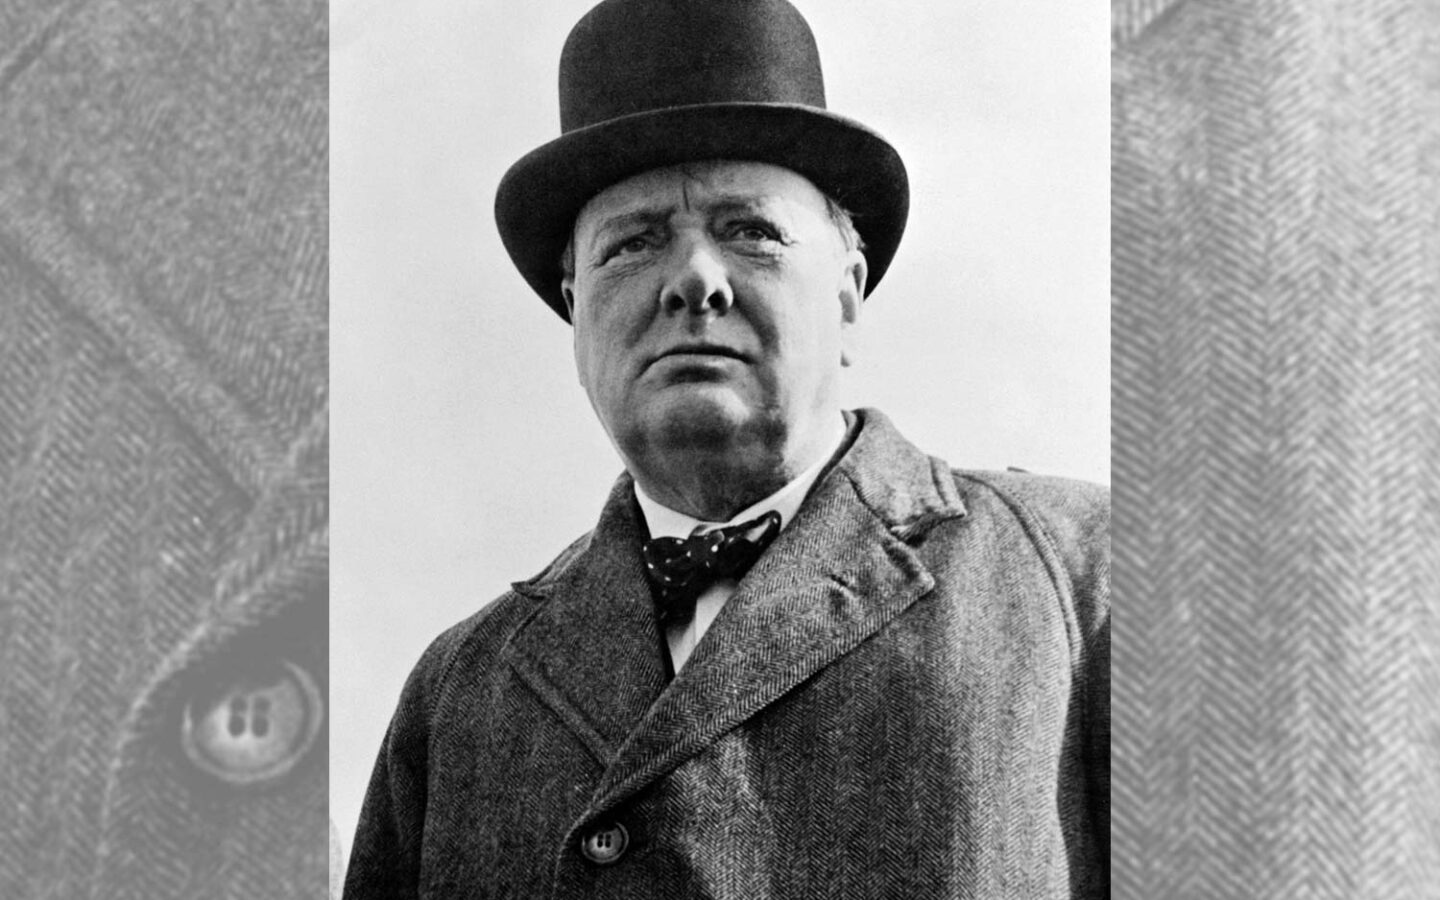 historical black and white photo of a man in a top hat